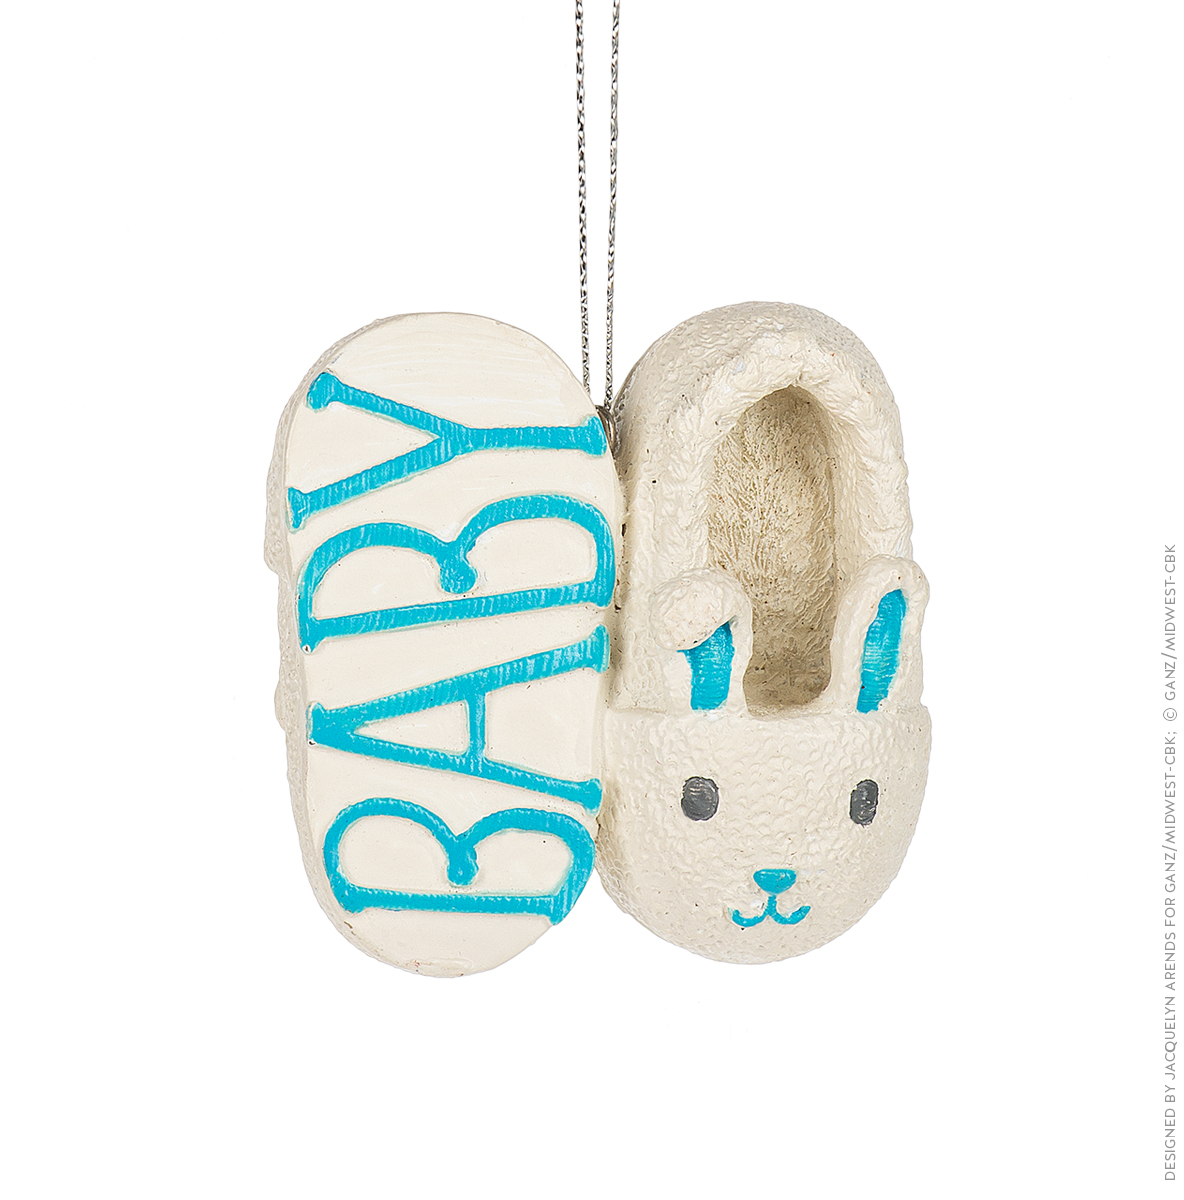 Specialty Ornaments Baby Slippers in Blue ornament by Jacquelyn Arends; © Ganz/Midwest-CBK 2019